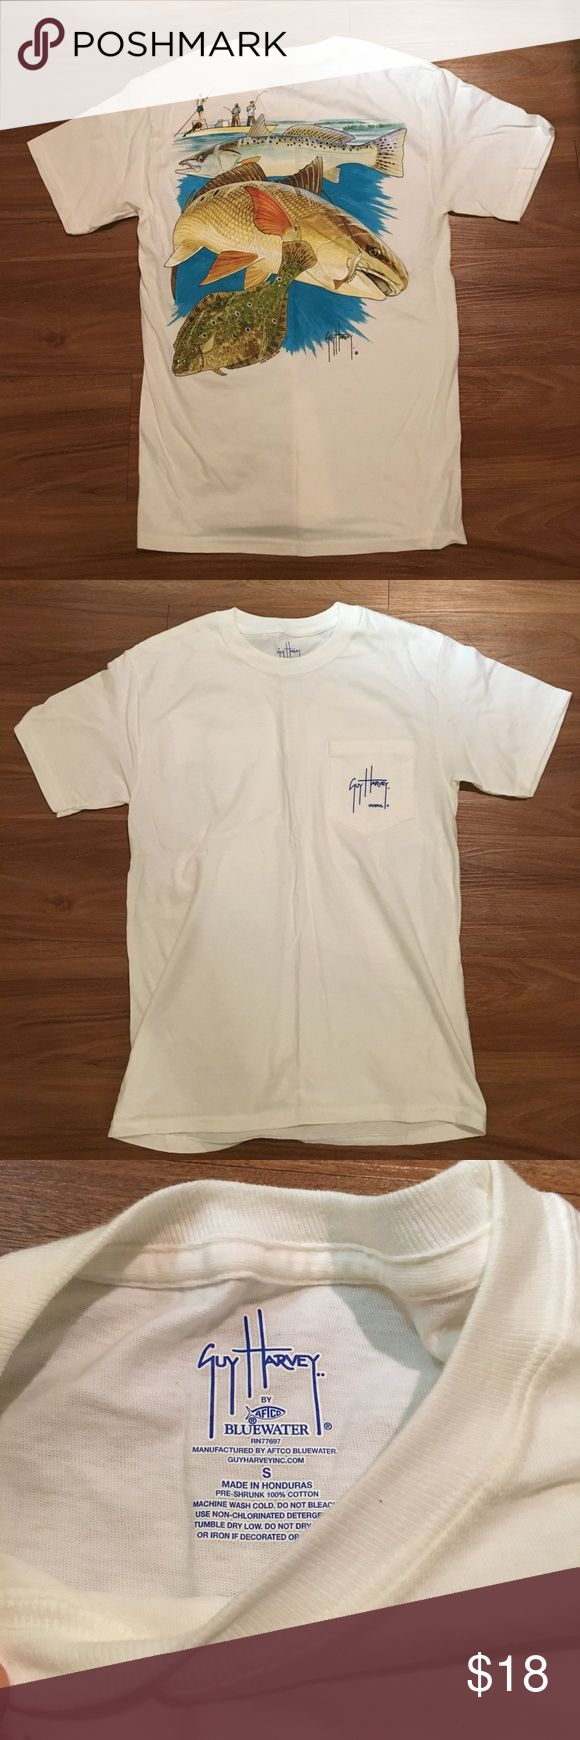 New Guy Harvey fish tee New without tags Guy Harvey fishing tee - perfect condition. Guy Harvey Shirts Tees - Short Sleeve